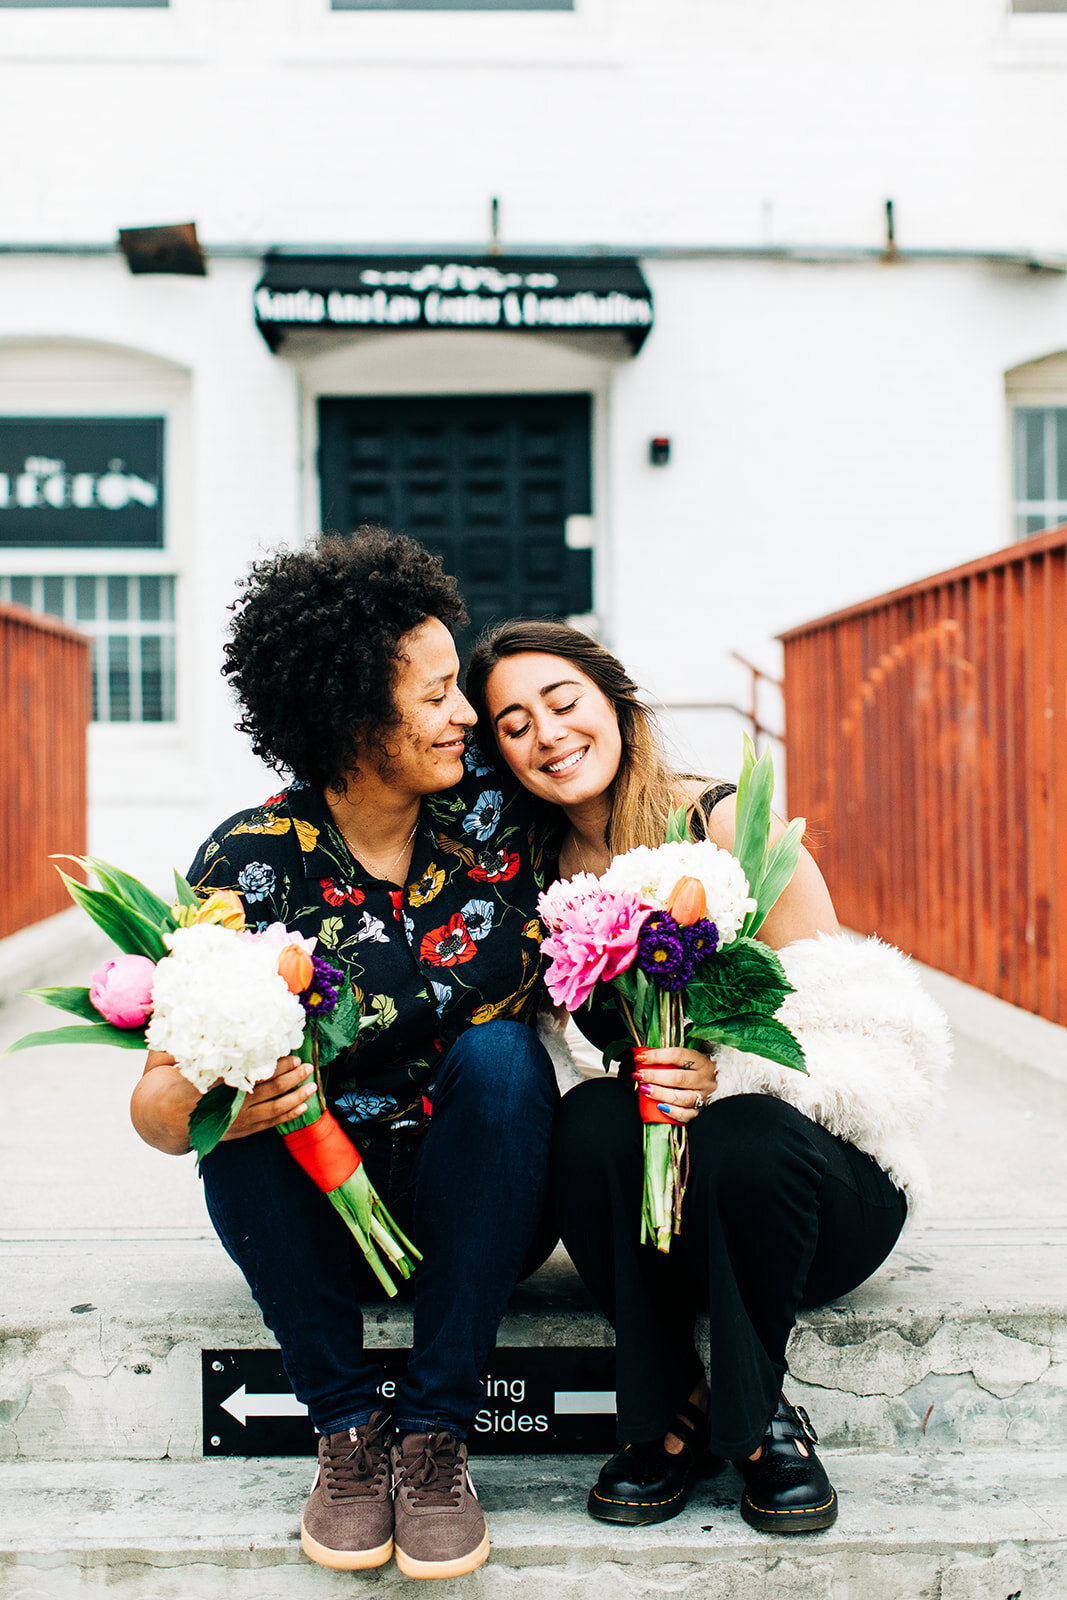 lgbtq-wedding-photographer_lesbian-engagement-photos_southern-california-engagement-photos_downtown-santa-ana_107.jpg